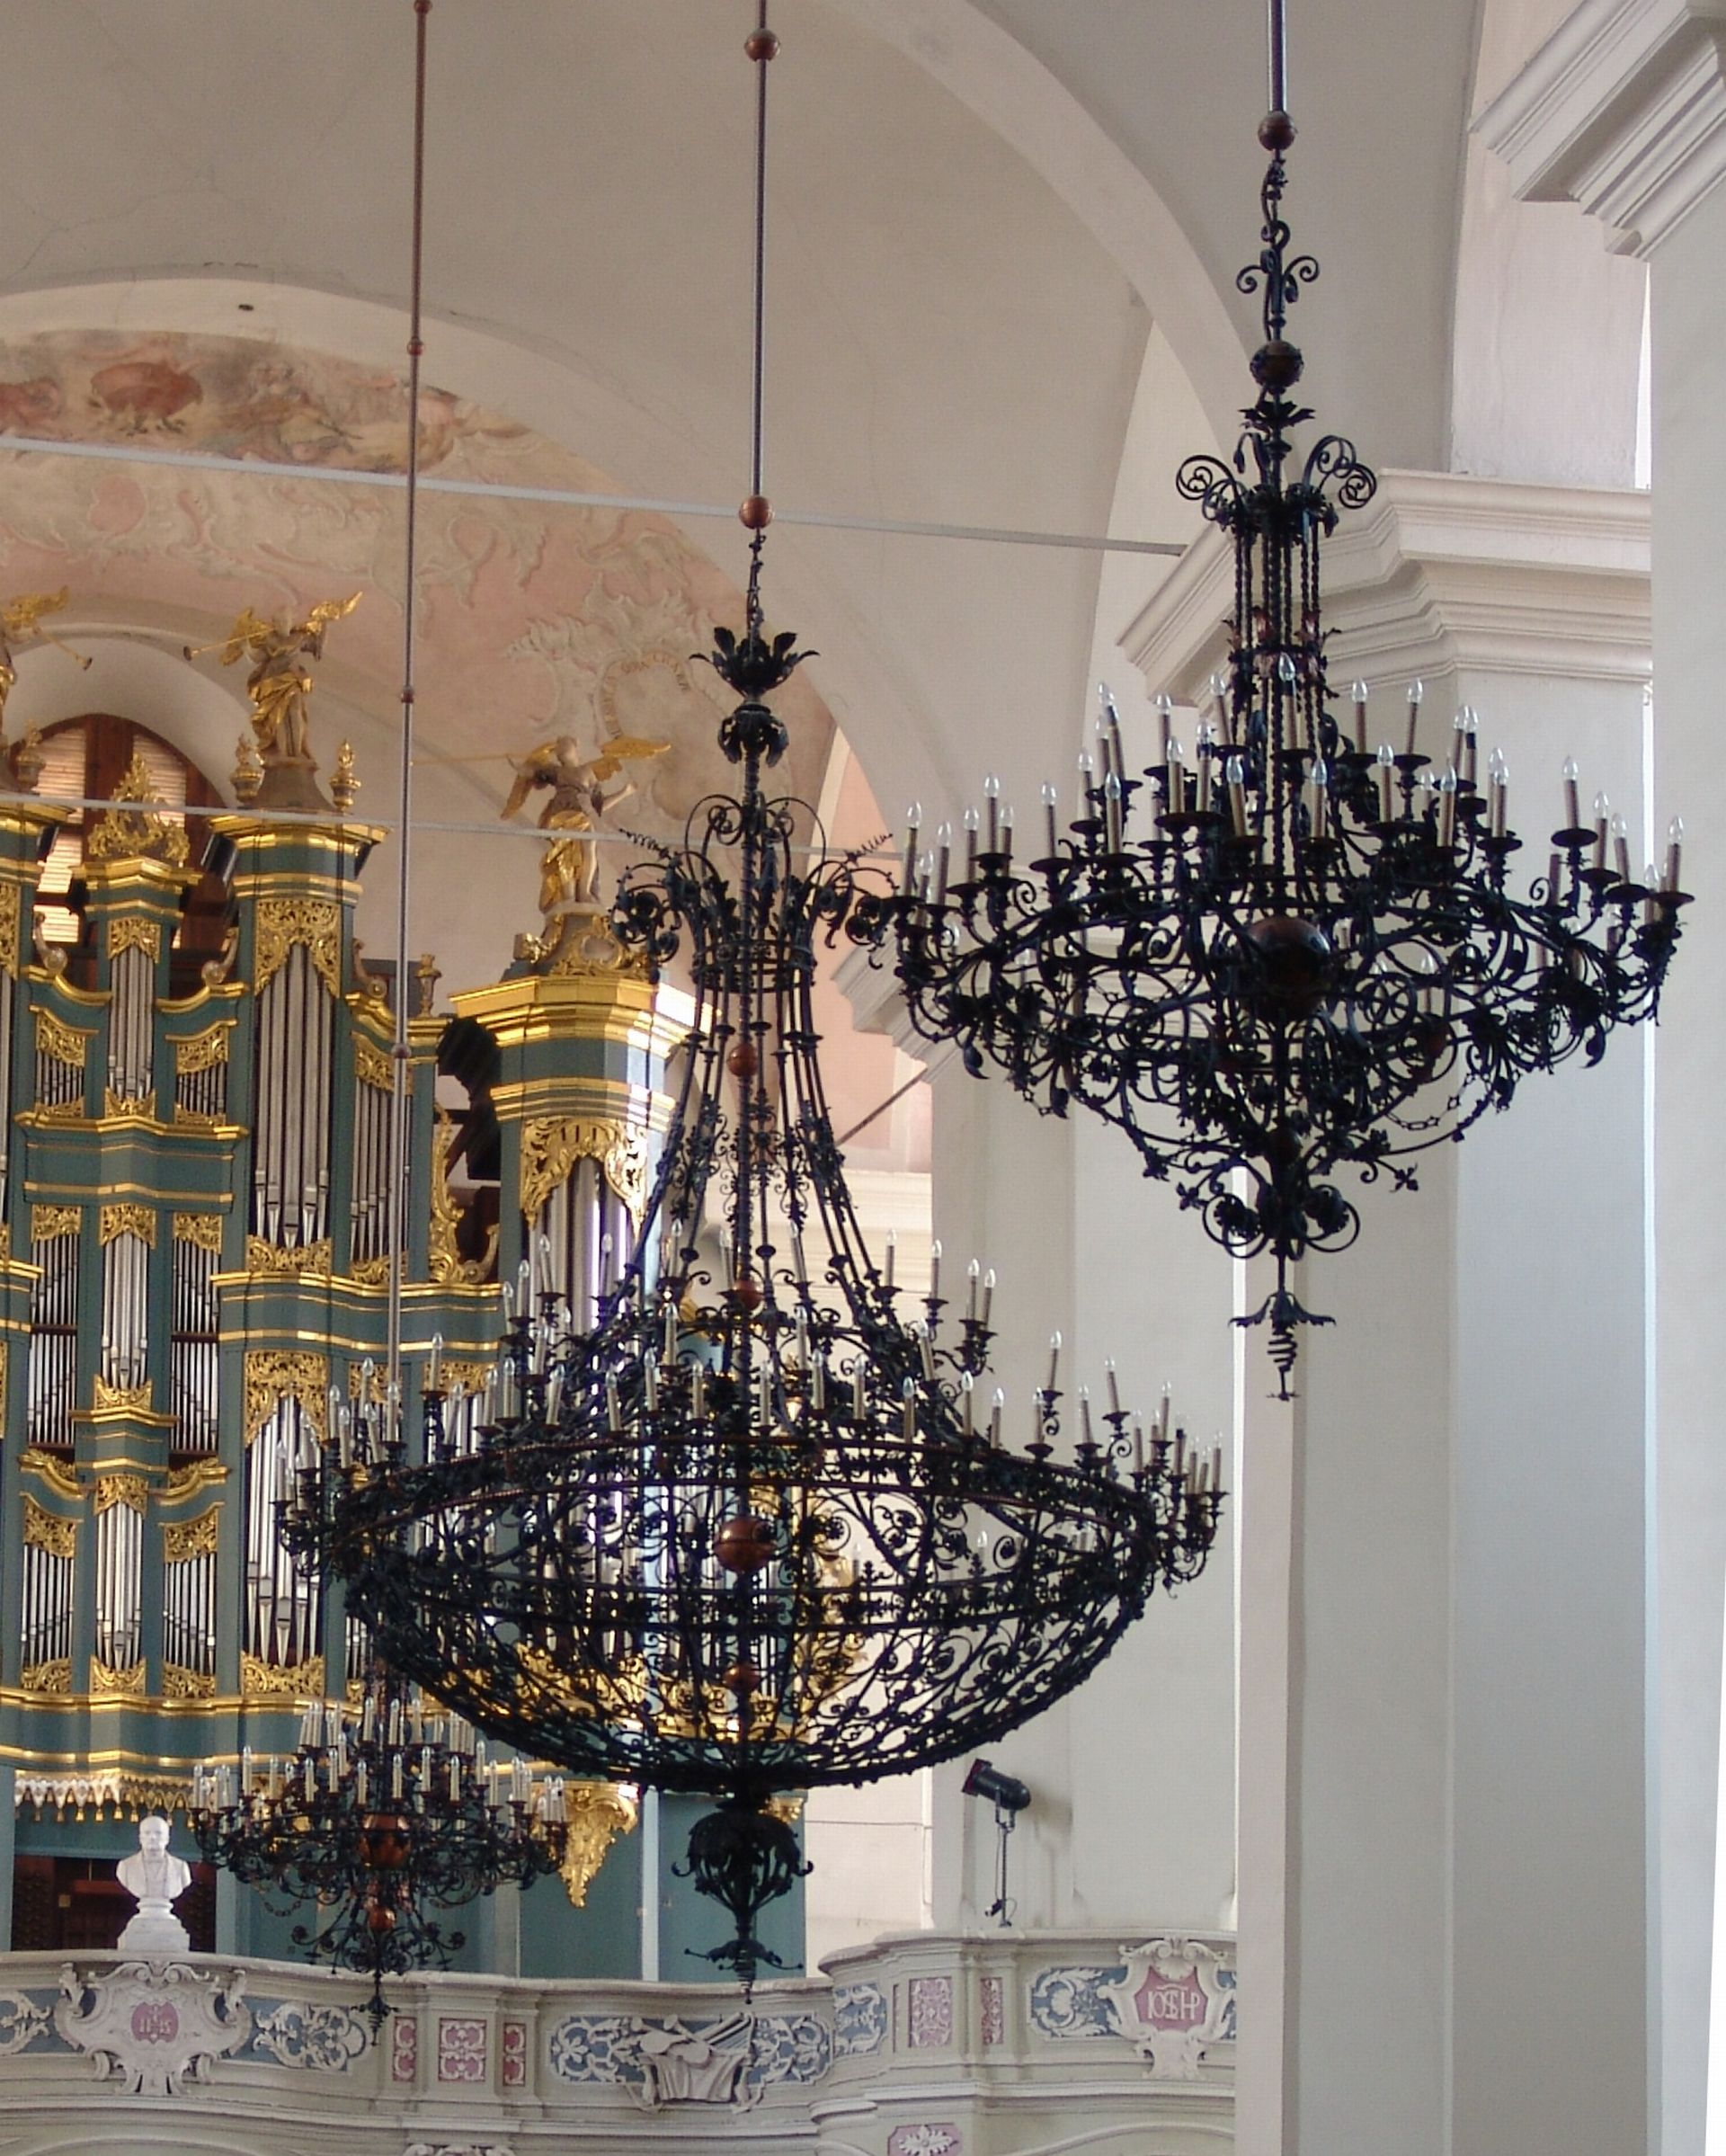 Chandeliers at the Church of John the Baptist and St. John the Apostle and Evangelist in Vilnius. Photo by Aloyzas Petrašiūnas, 2017